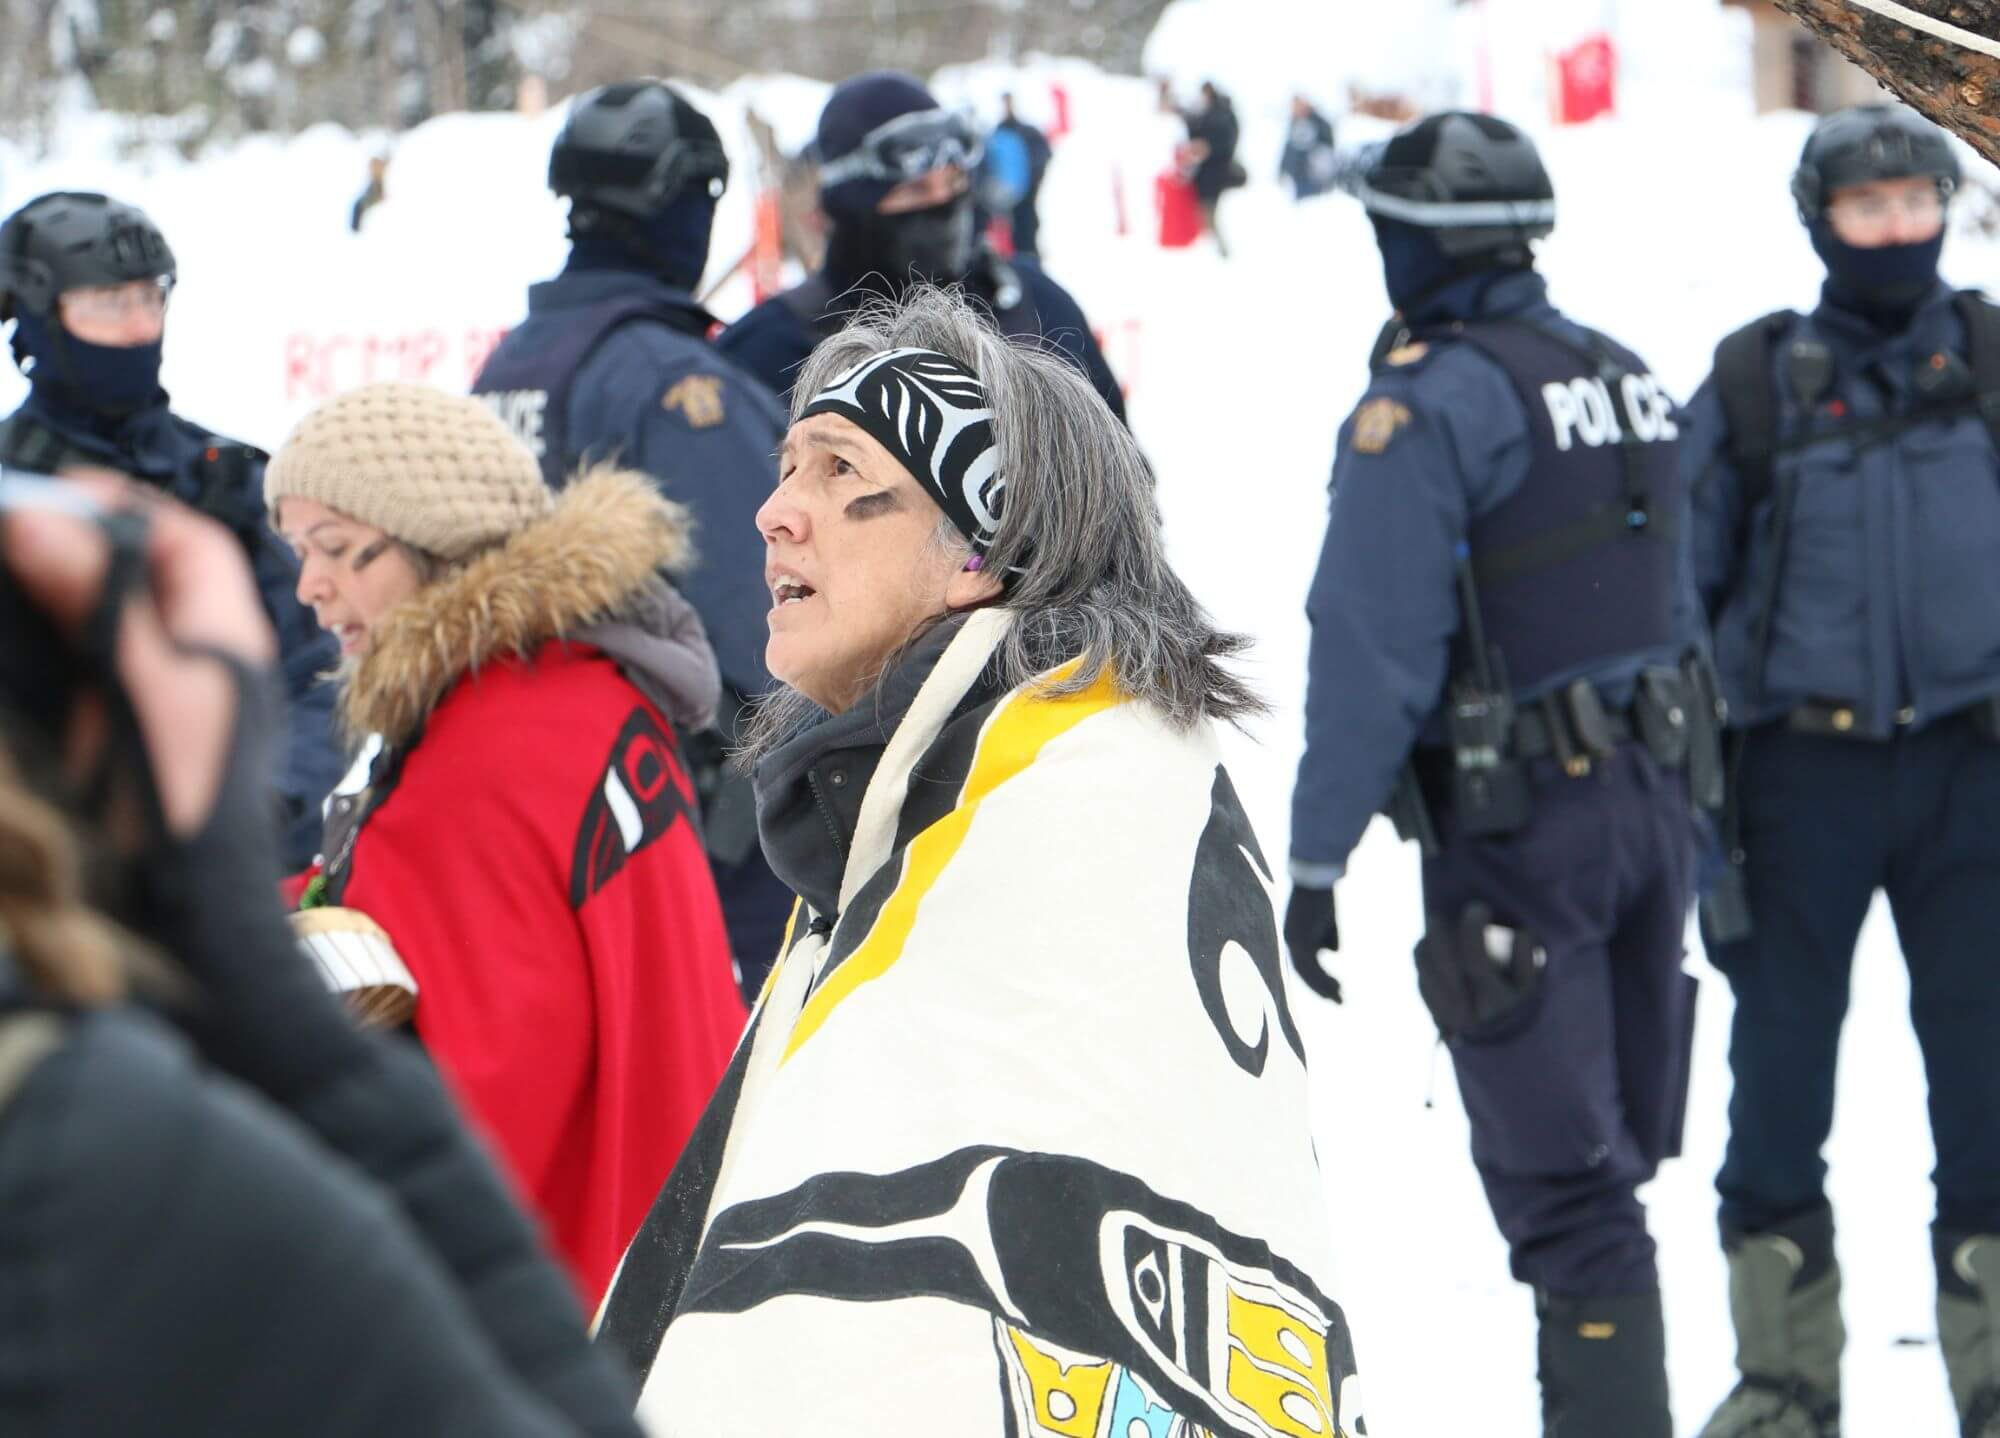 An Indigenous activist standing amid five police officers and two others.